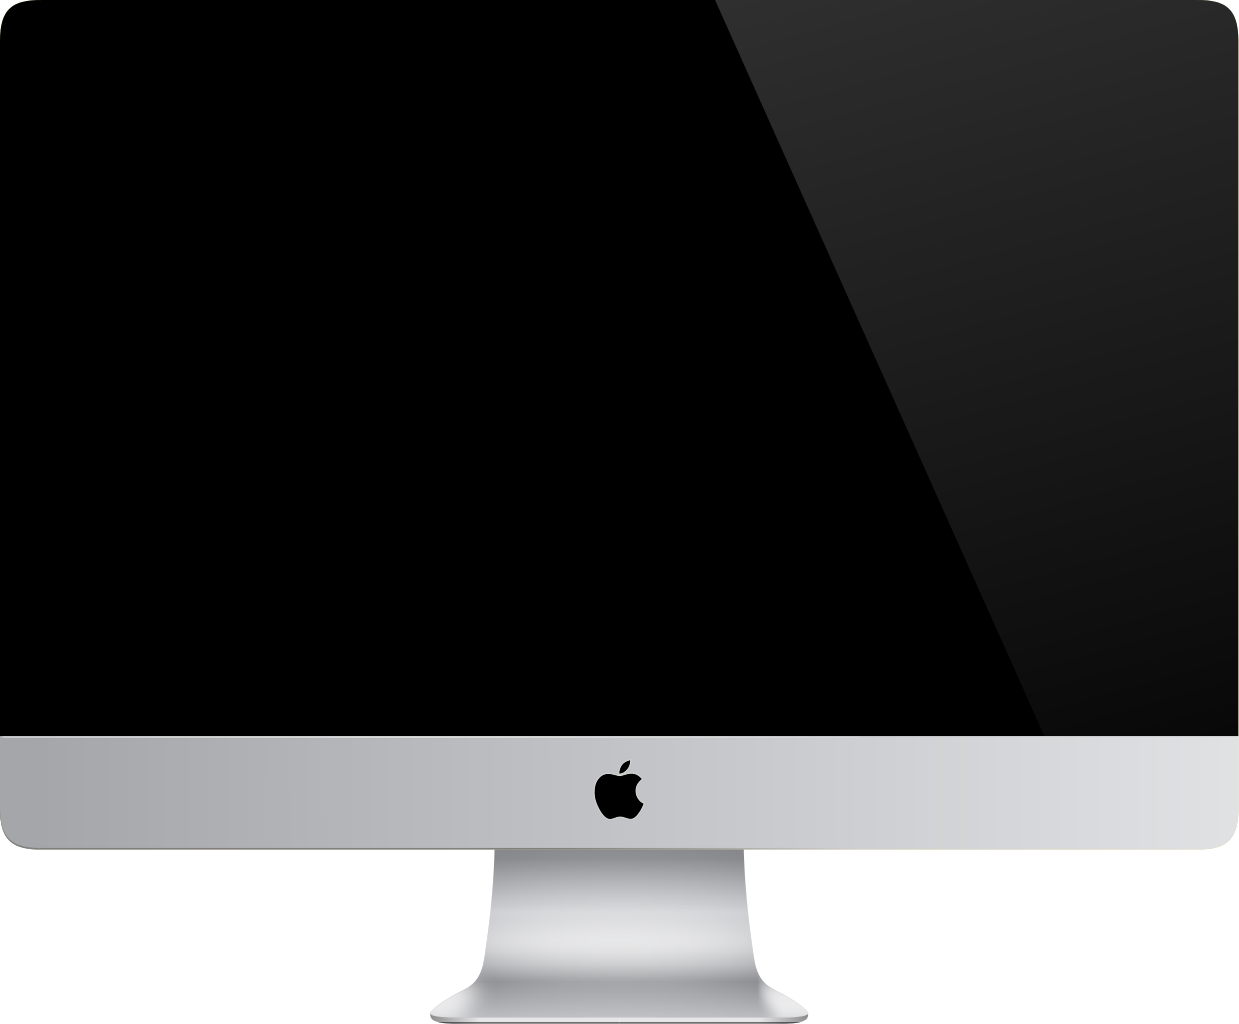 iMac Filled icon. This logo i